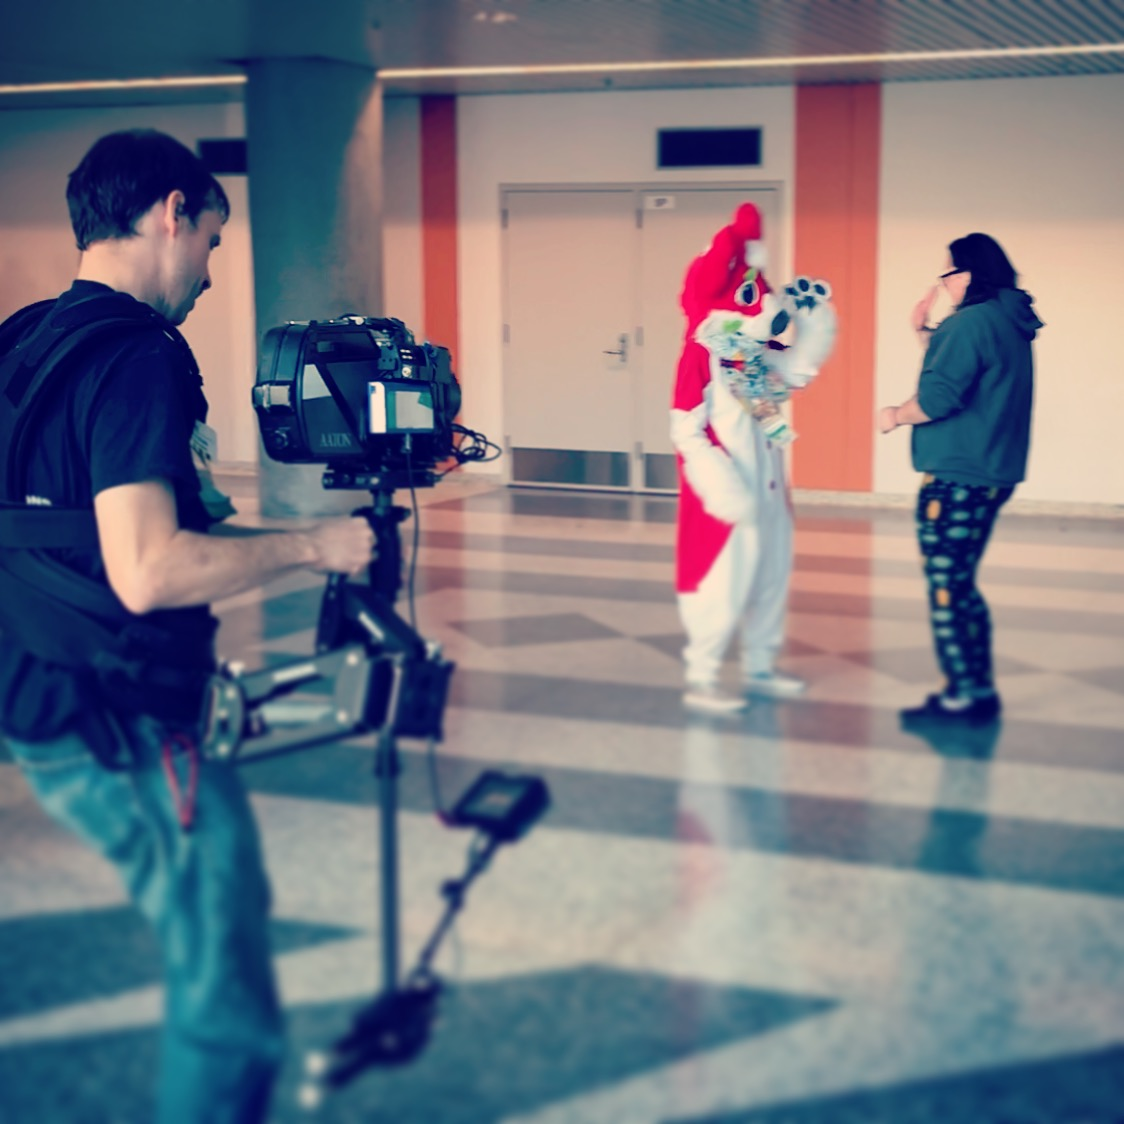 aaton_35III_tye_steadicam_withfurries.JP